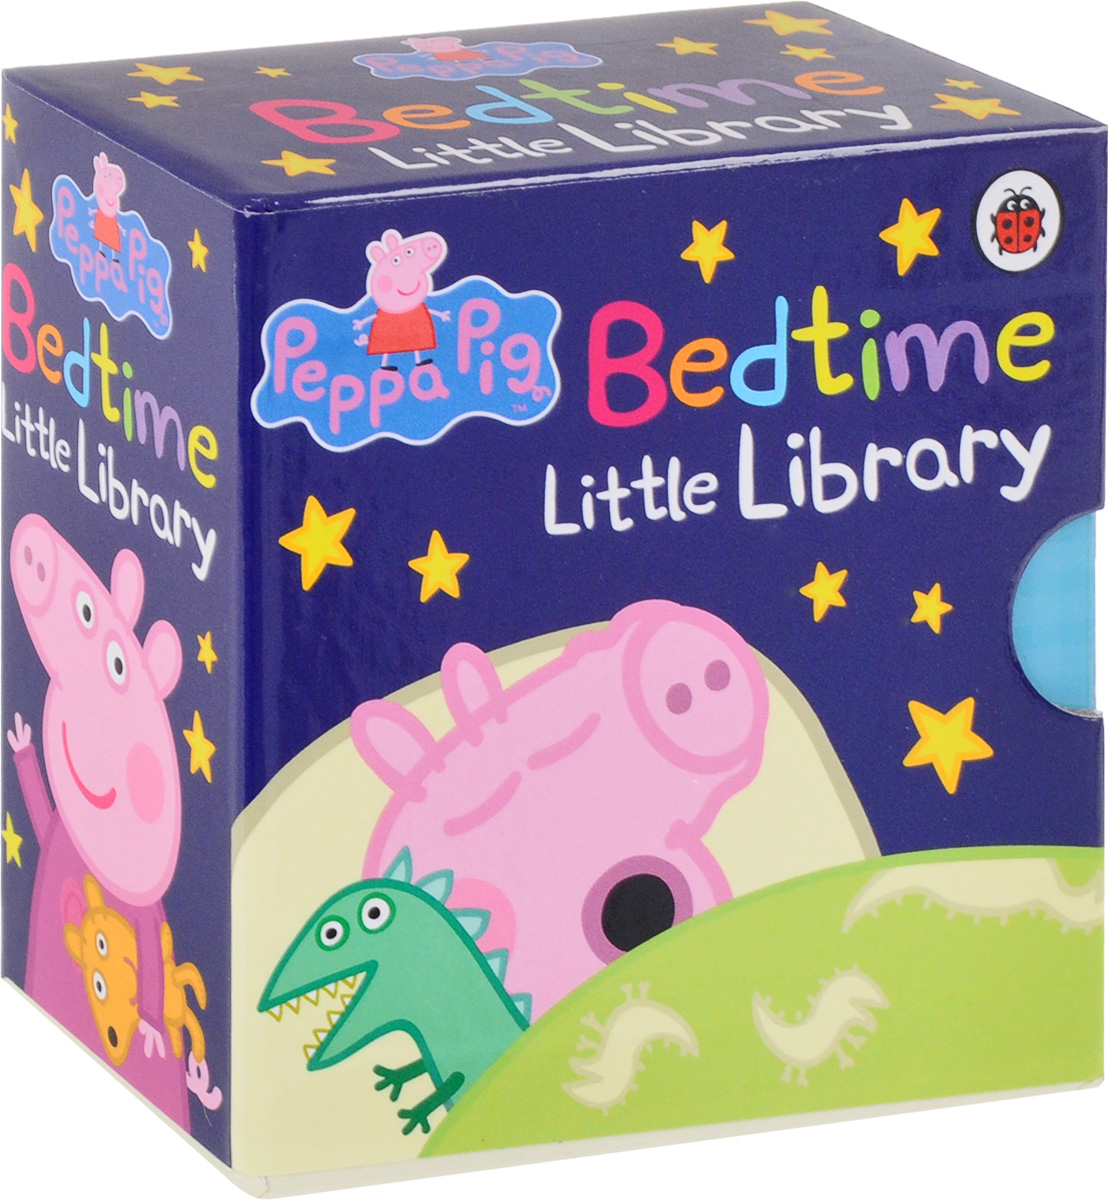 Peppa Pig: Bedtime Little Library купить